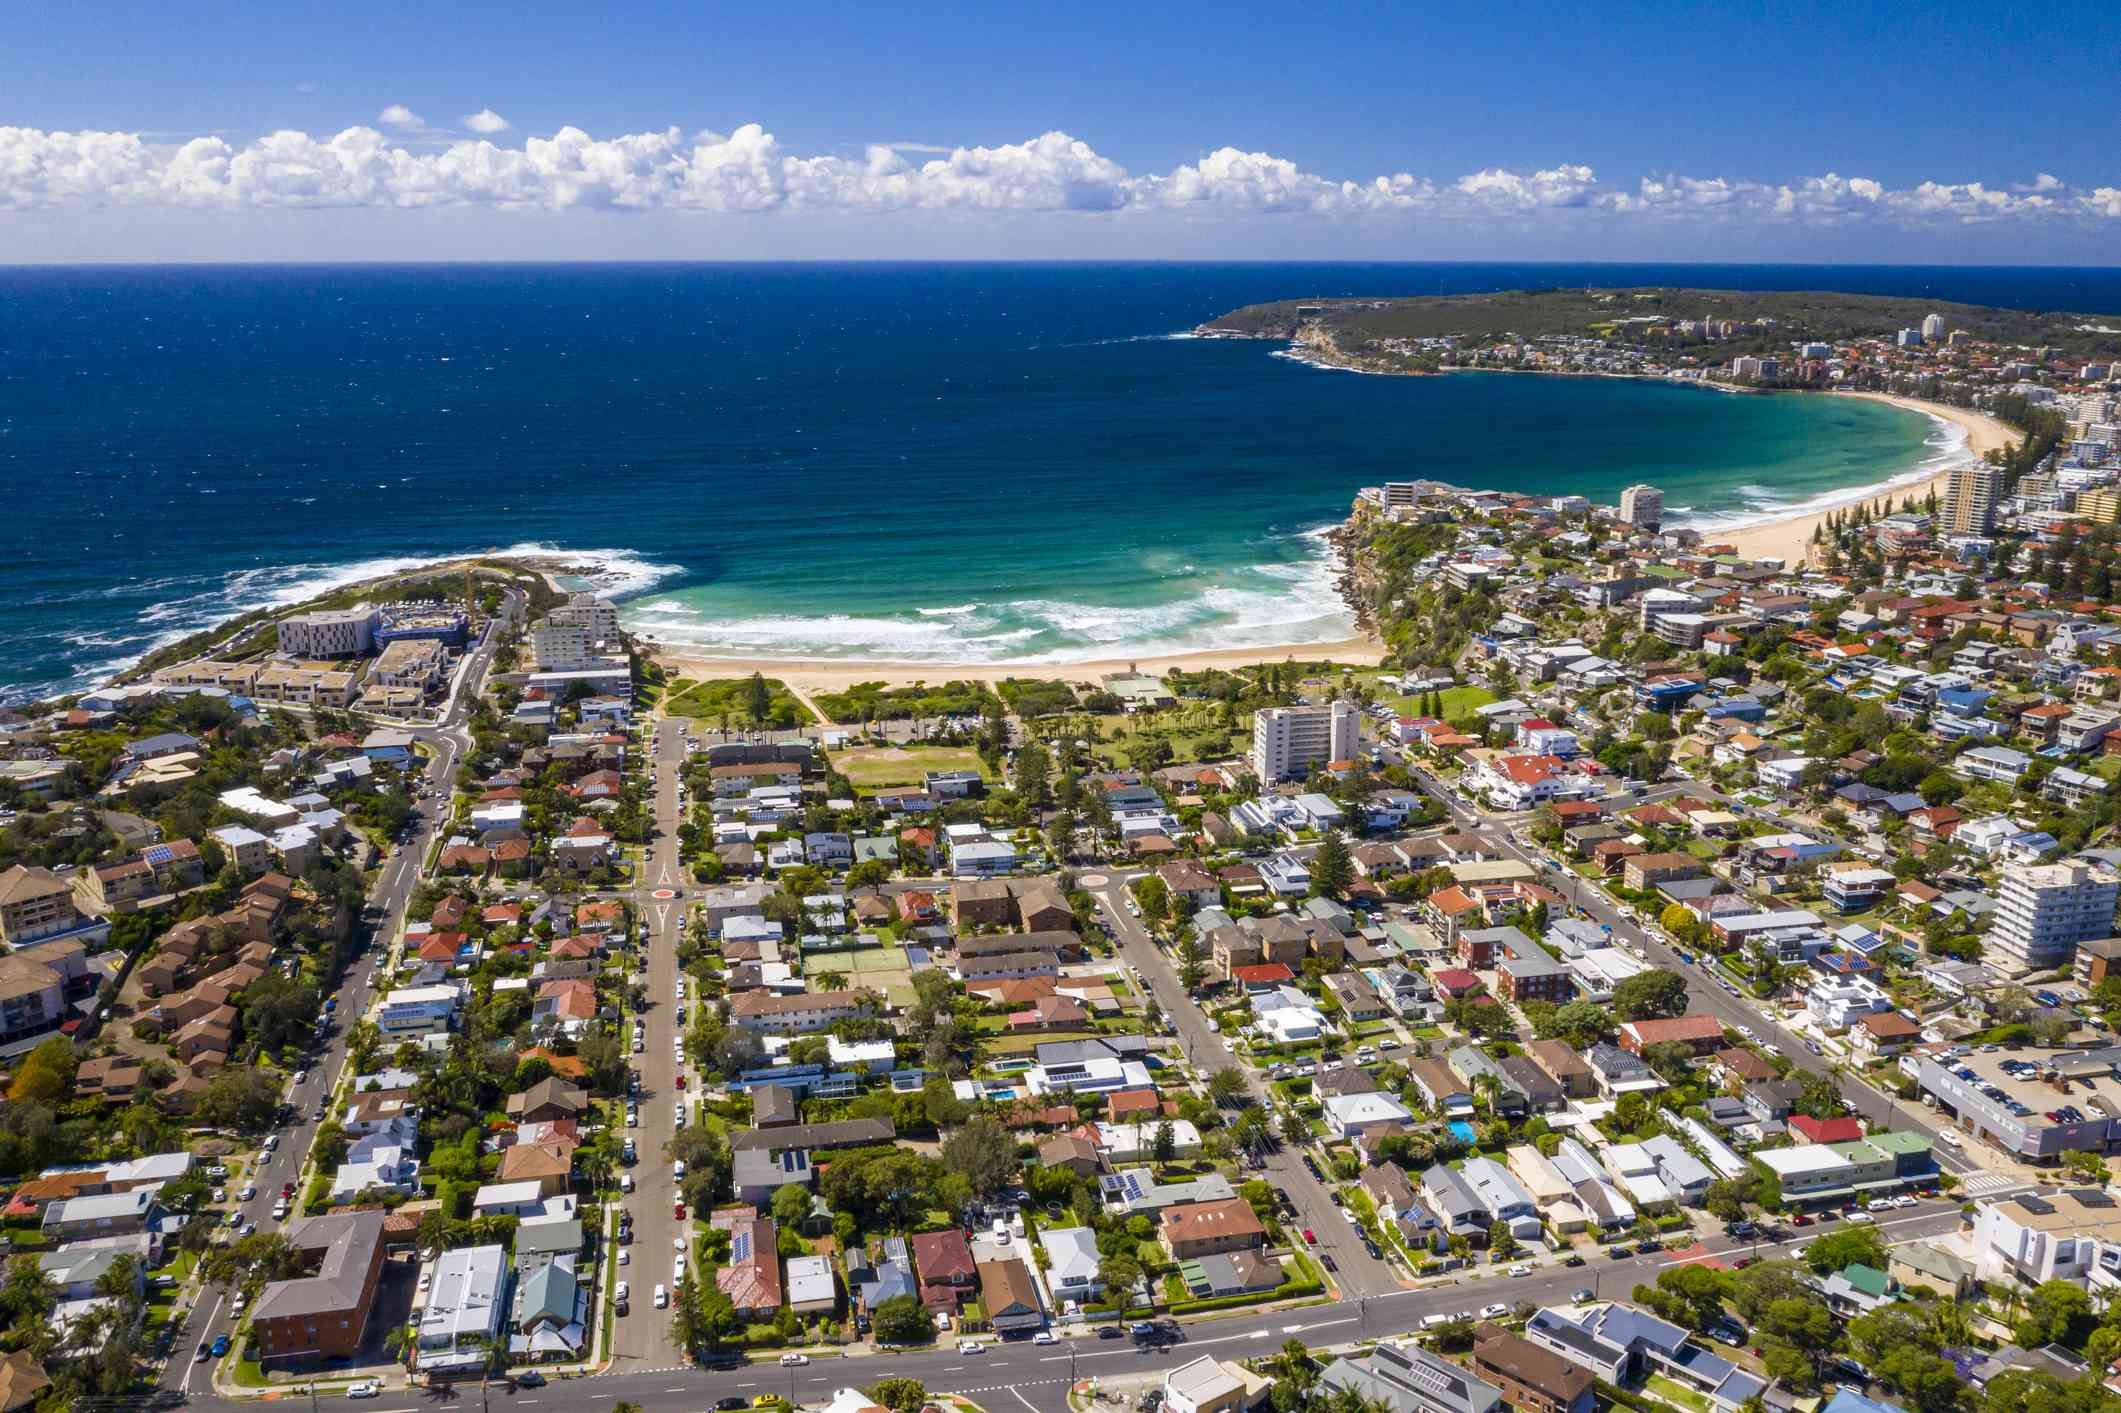 Aerial view of Freshwater and Manly